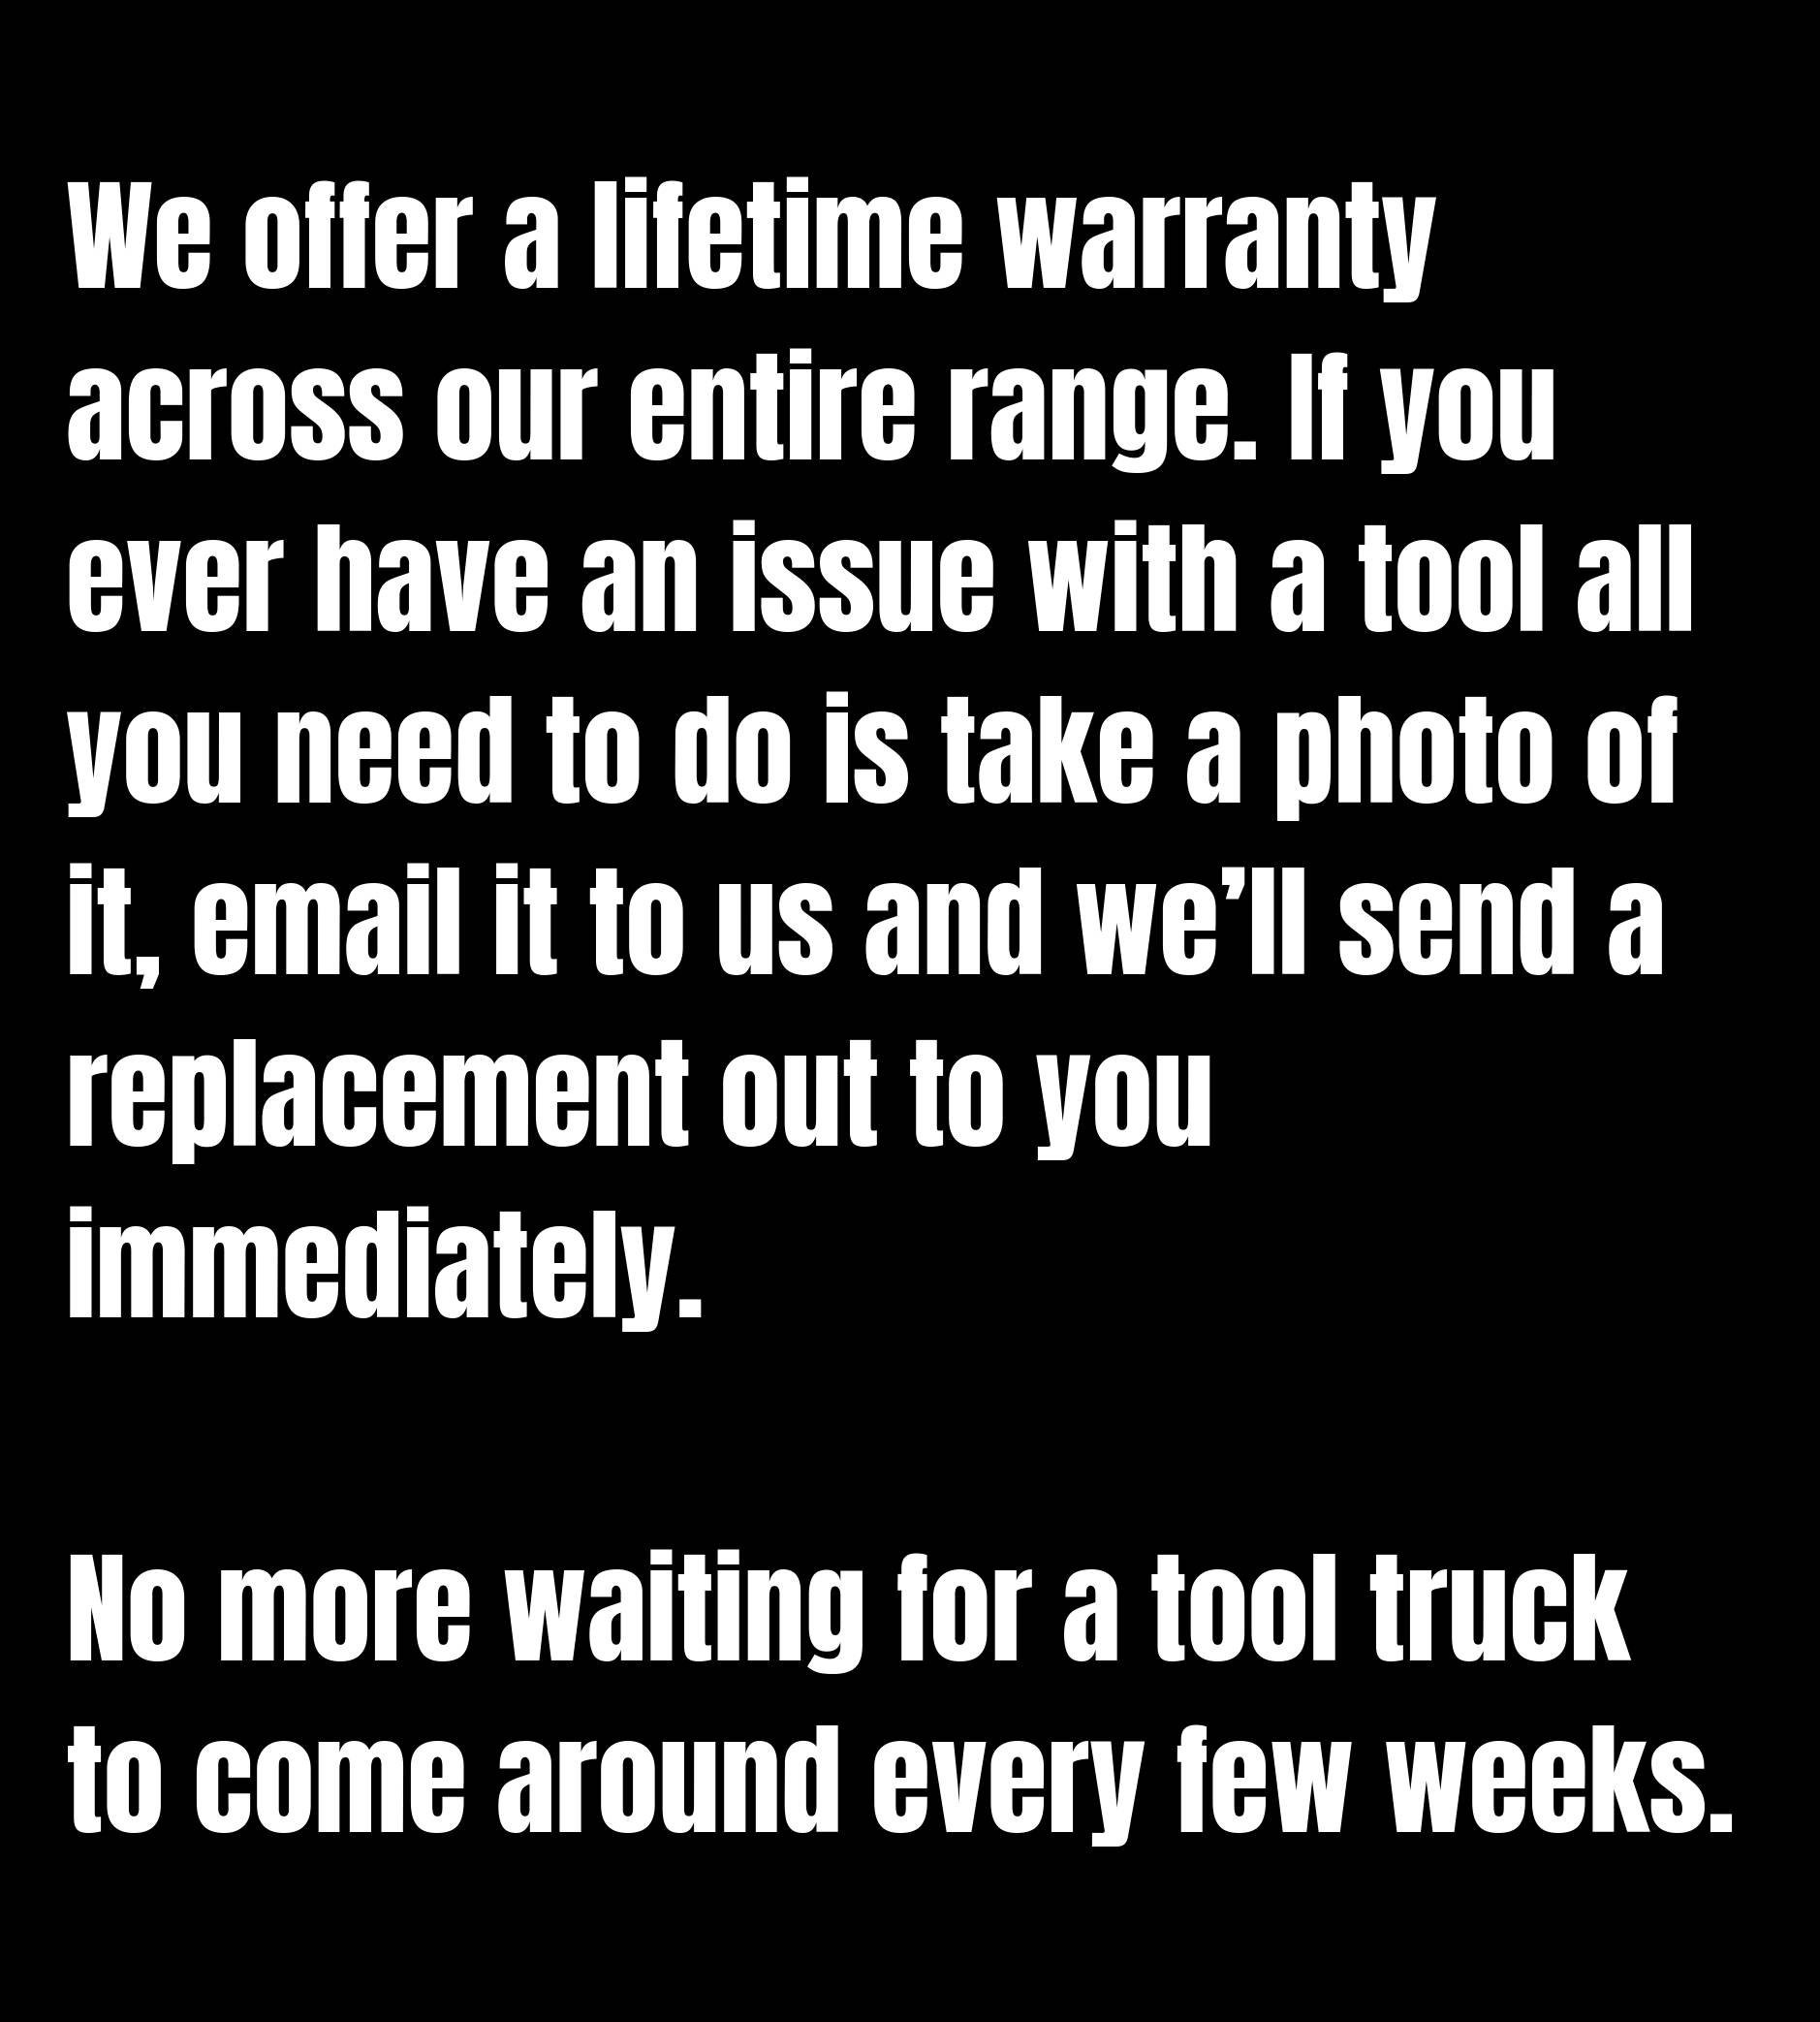 We offer a lifetime warranty across our entire range. If you ever have an issue with a tool all you need to do is take a photo of it, email it to us and we'll send a replacement out to you immediately.  No more waiting for a tool truck to come around every few weeks.